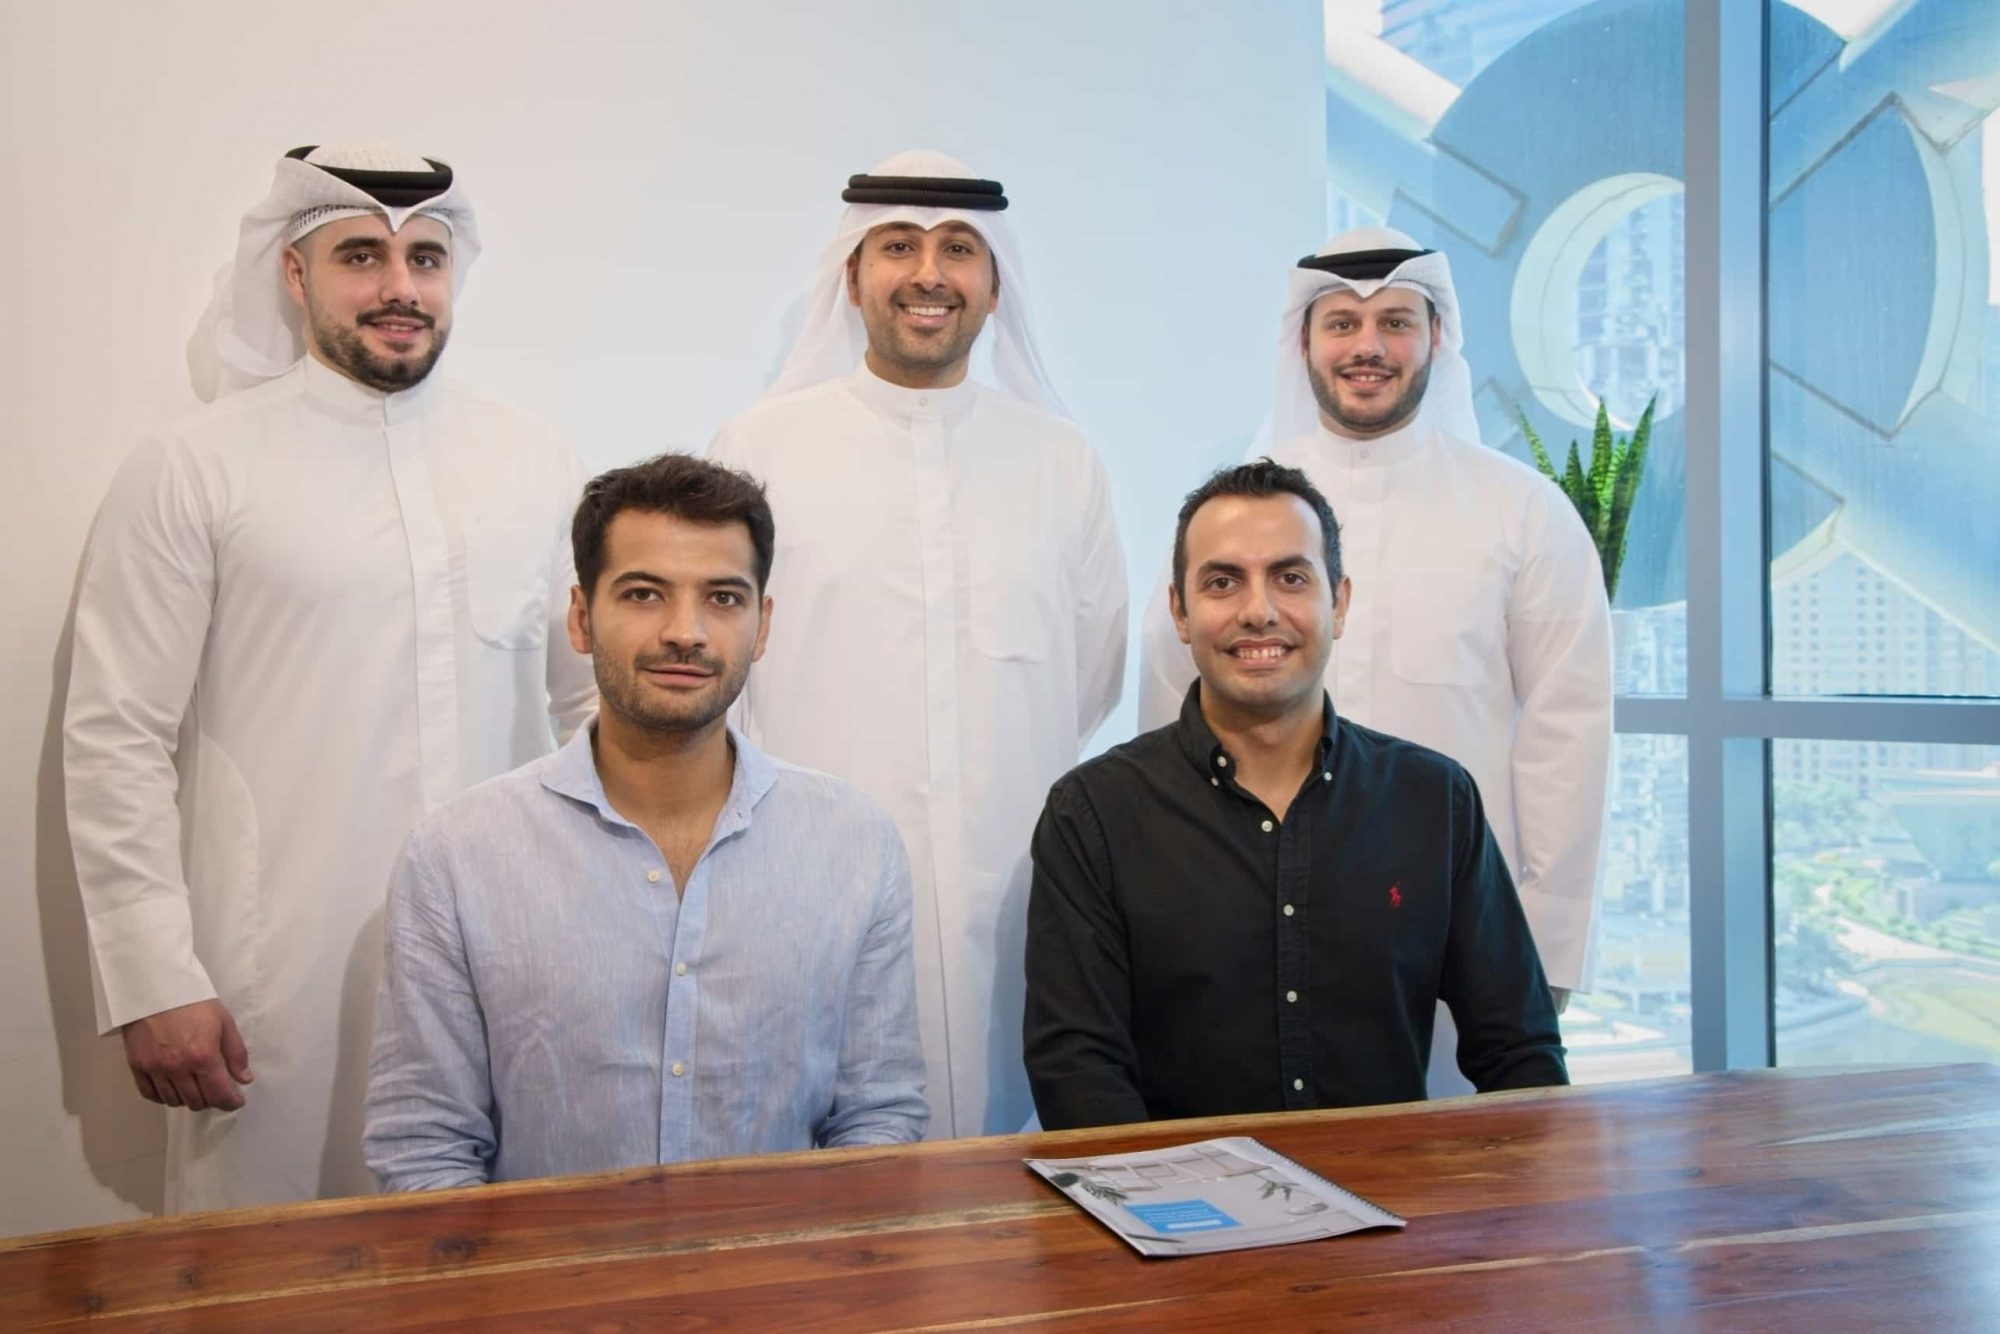 Dubai-based Justmop rakes in fresh investment from Faith Capital and 4 other investors